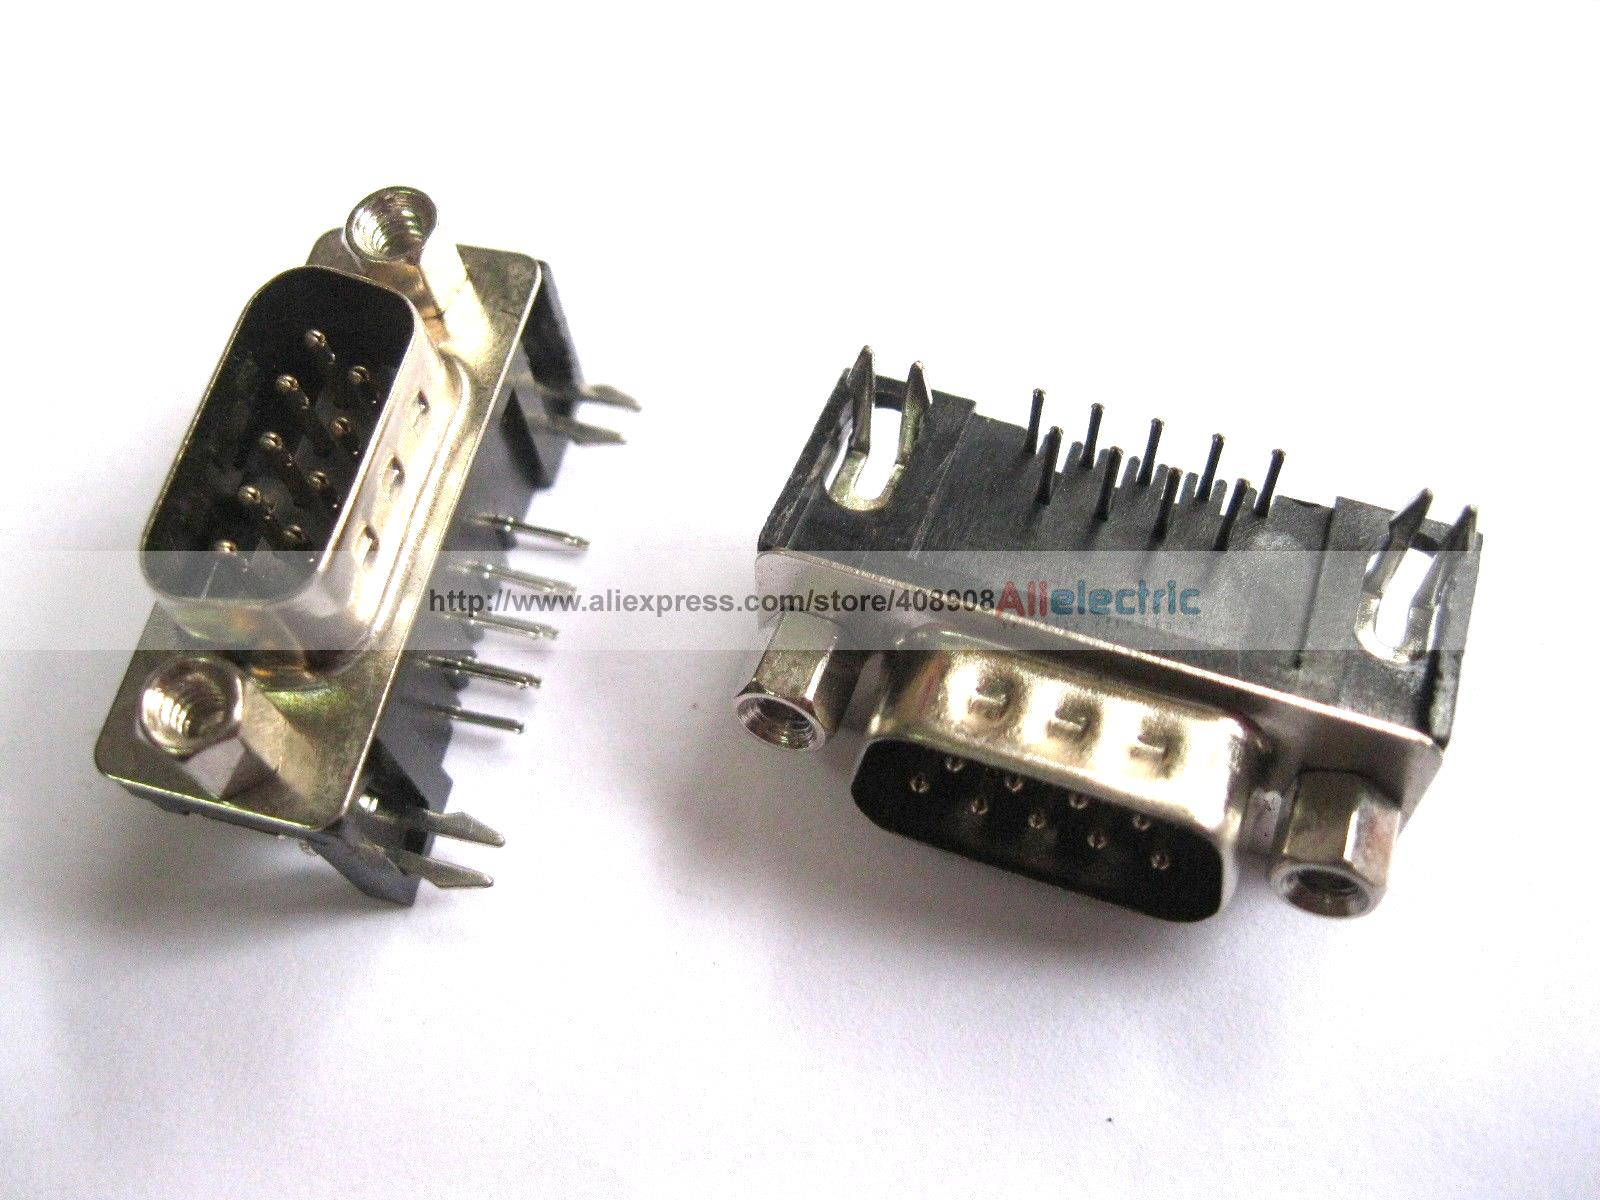 30 Pcs D Sub 9 Pin Male Connector with Right Angle